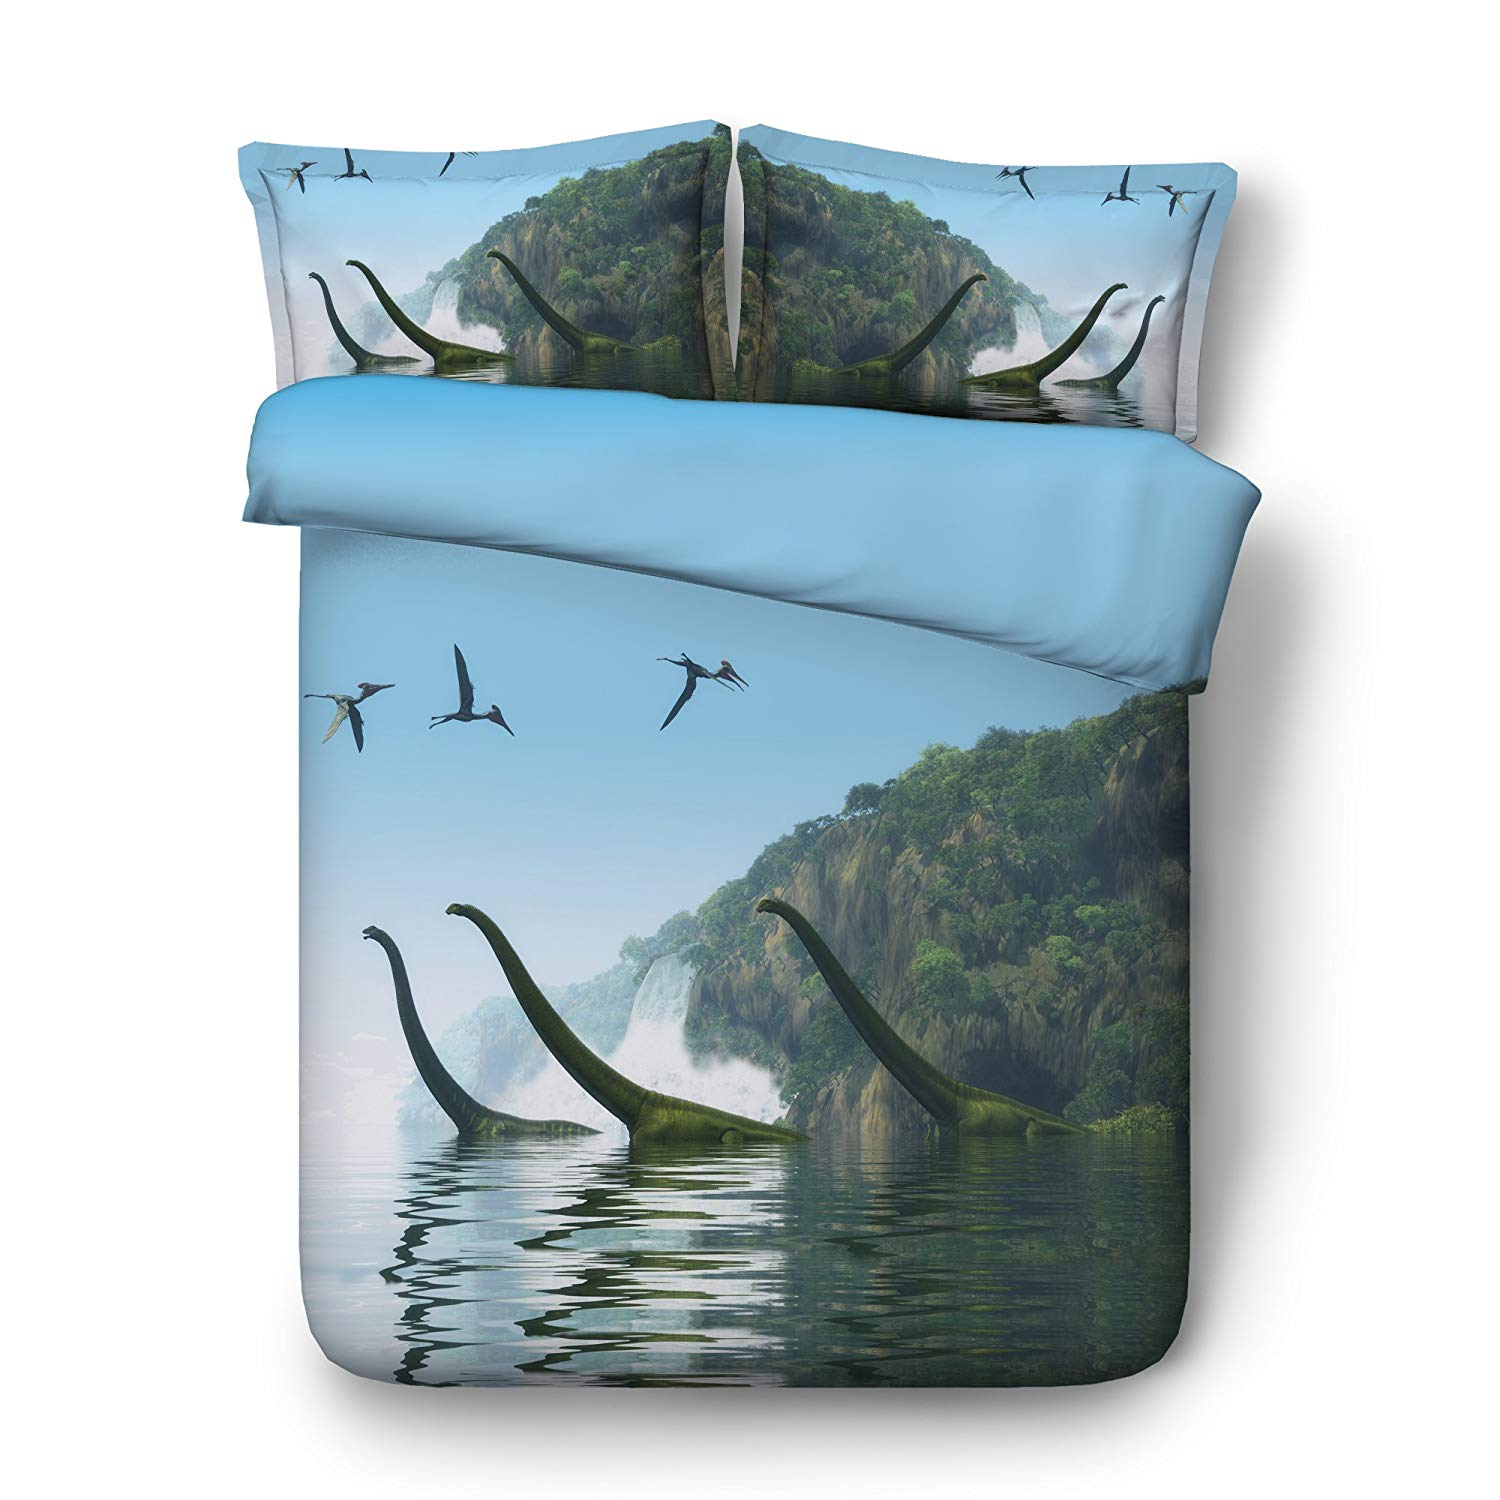 EsyDream Jurassic Period 3D Oil Dabble Dinosaur In Lake Men's Bedding Quilt Cover Twin King Queen Size Jurassic World Dinosaur in The Water Boys Bedding Bedspreads(King Size 3pc)